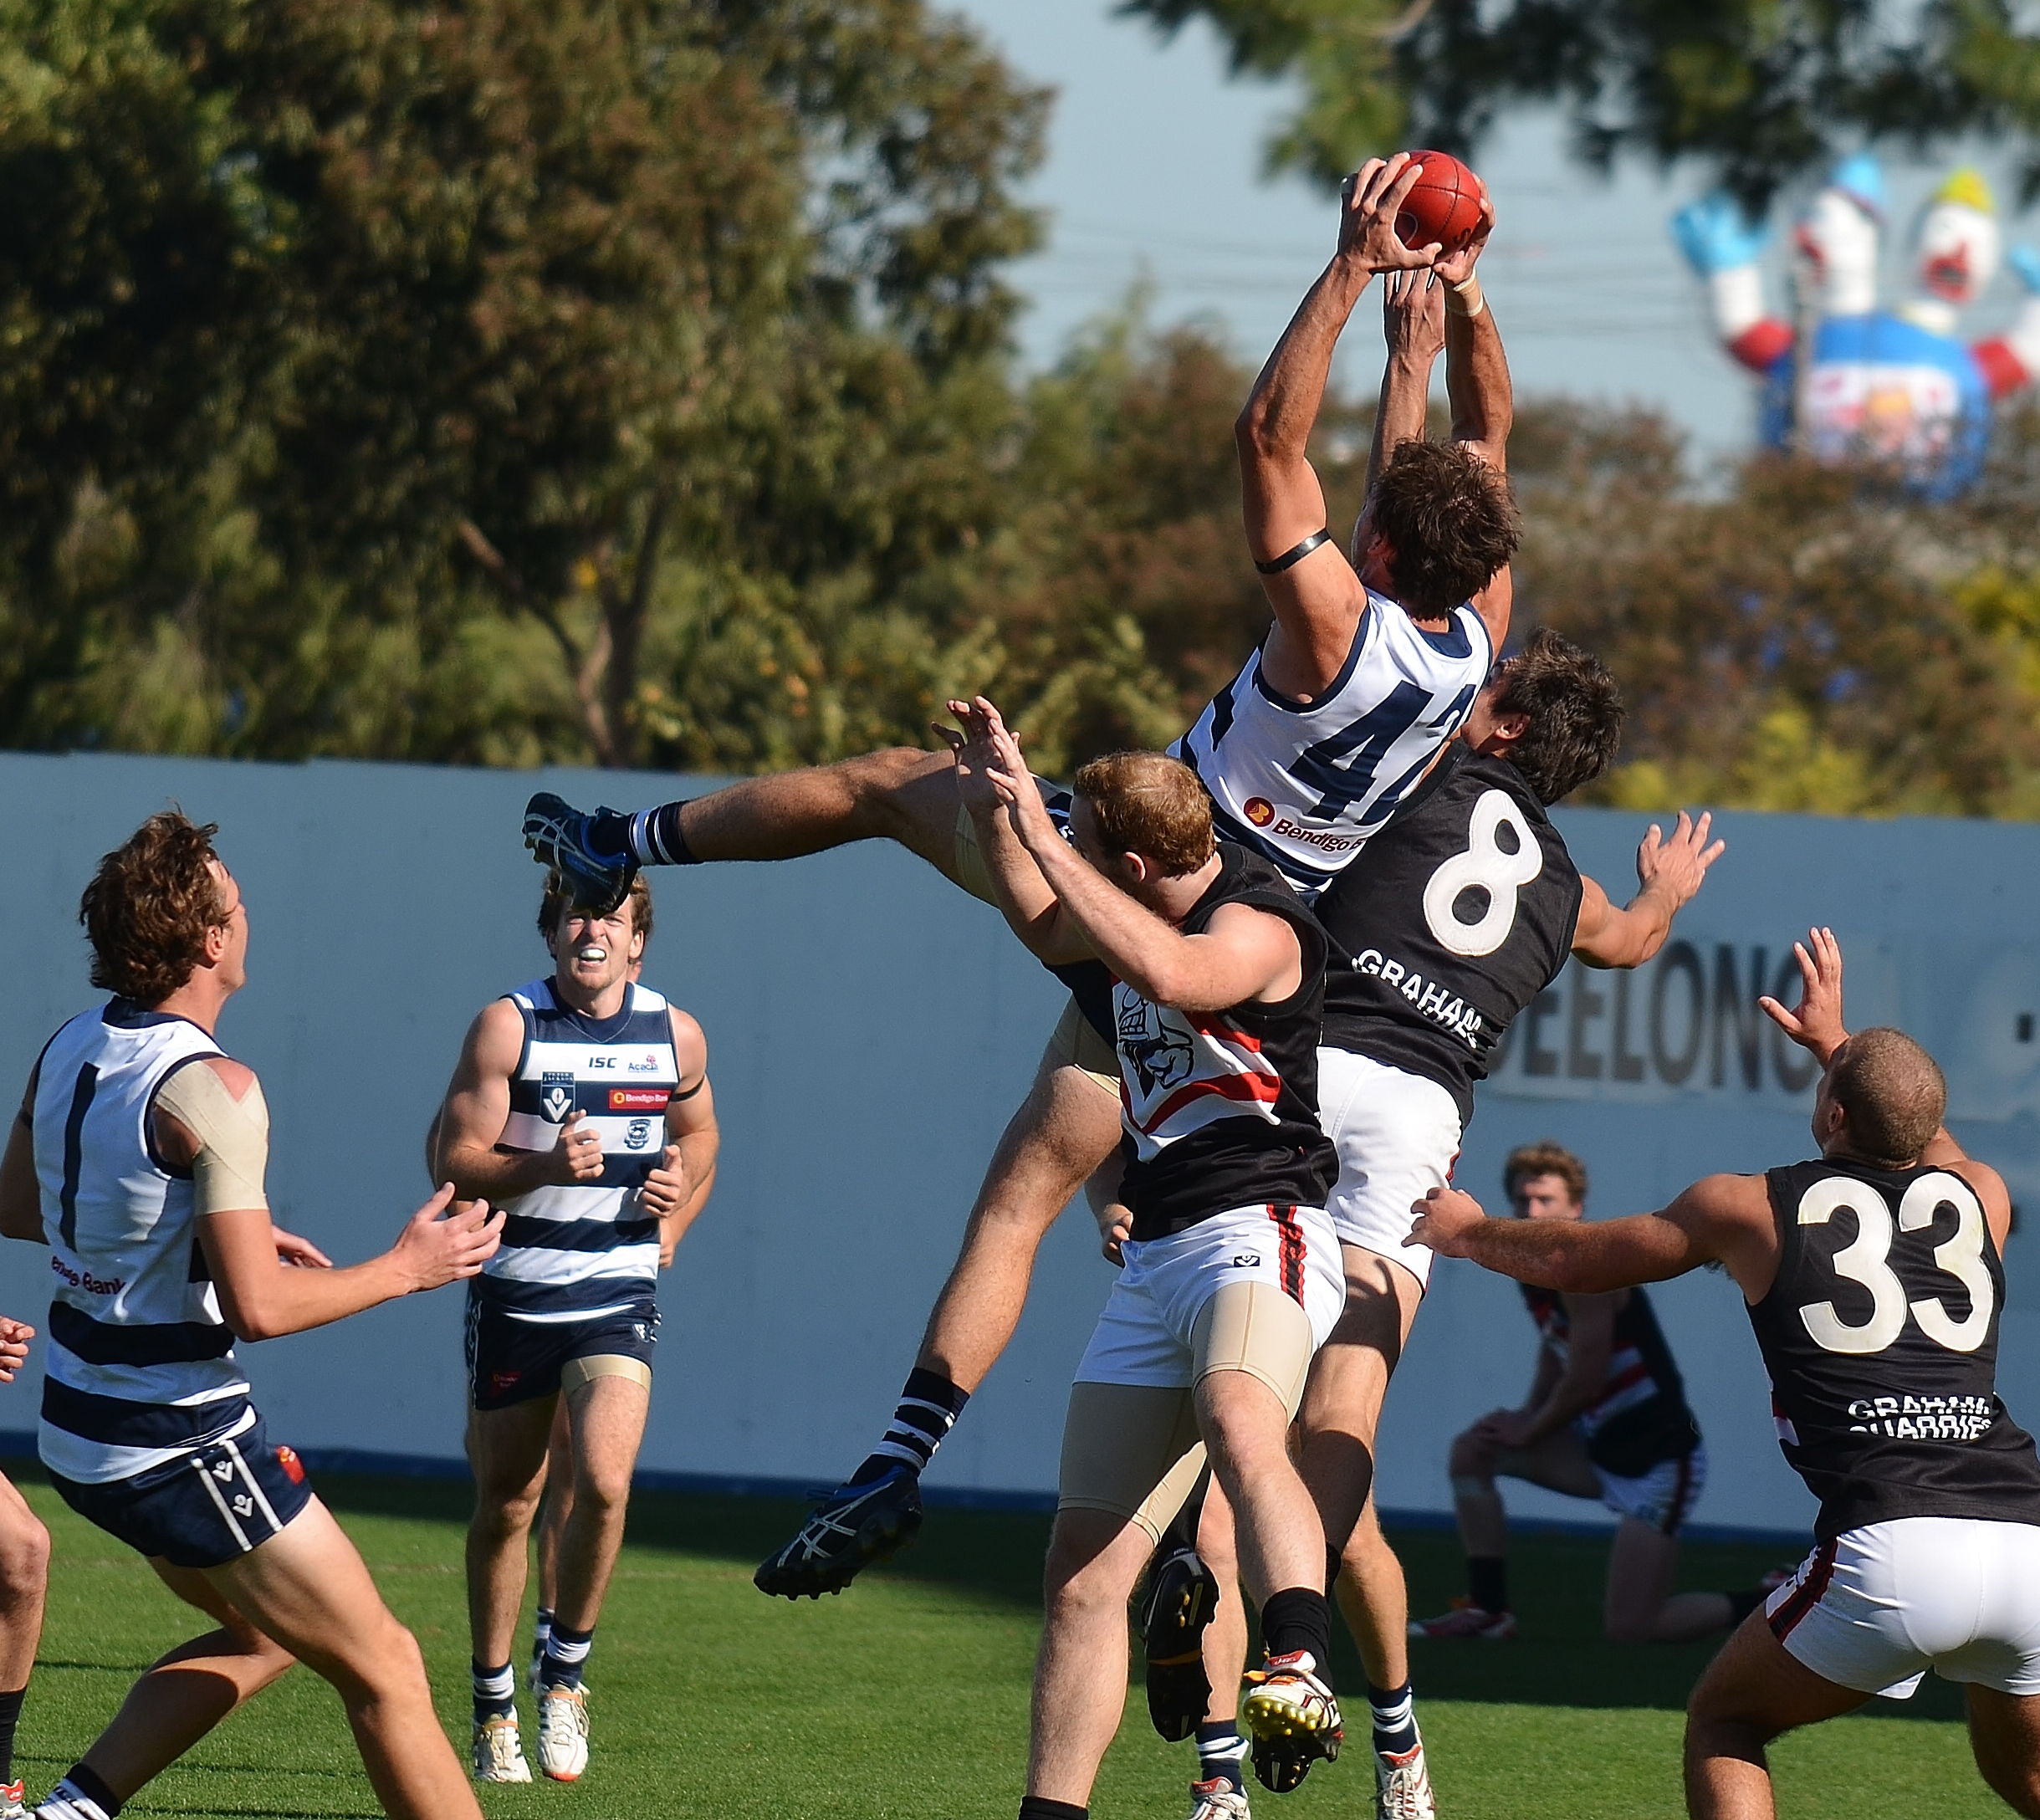 Josh Waker takes a mark for the Geelong Cats in the Victorian Football League (VFL). Marking is one of the most difficult and sport specific skills in Australian rules football.  Image supplied by  Arj Giese